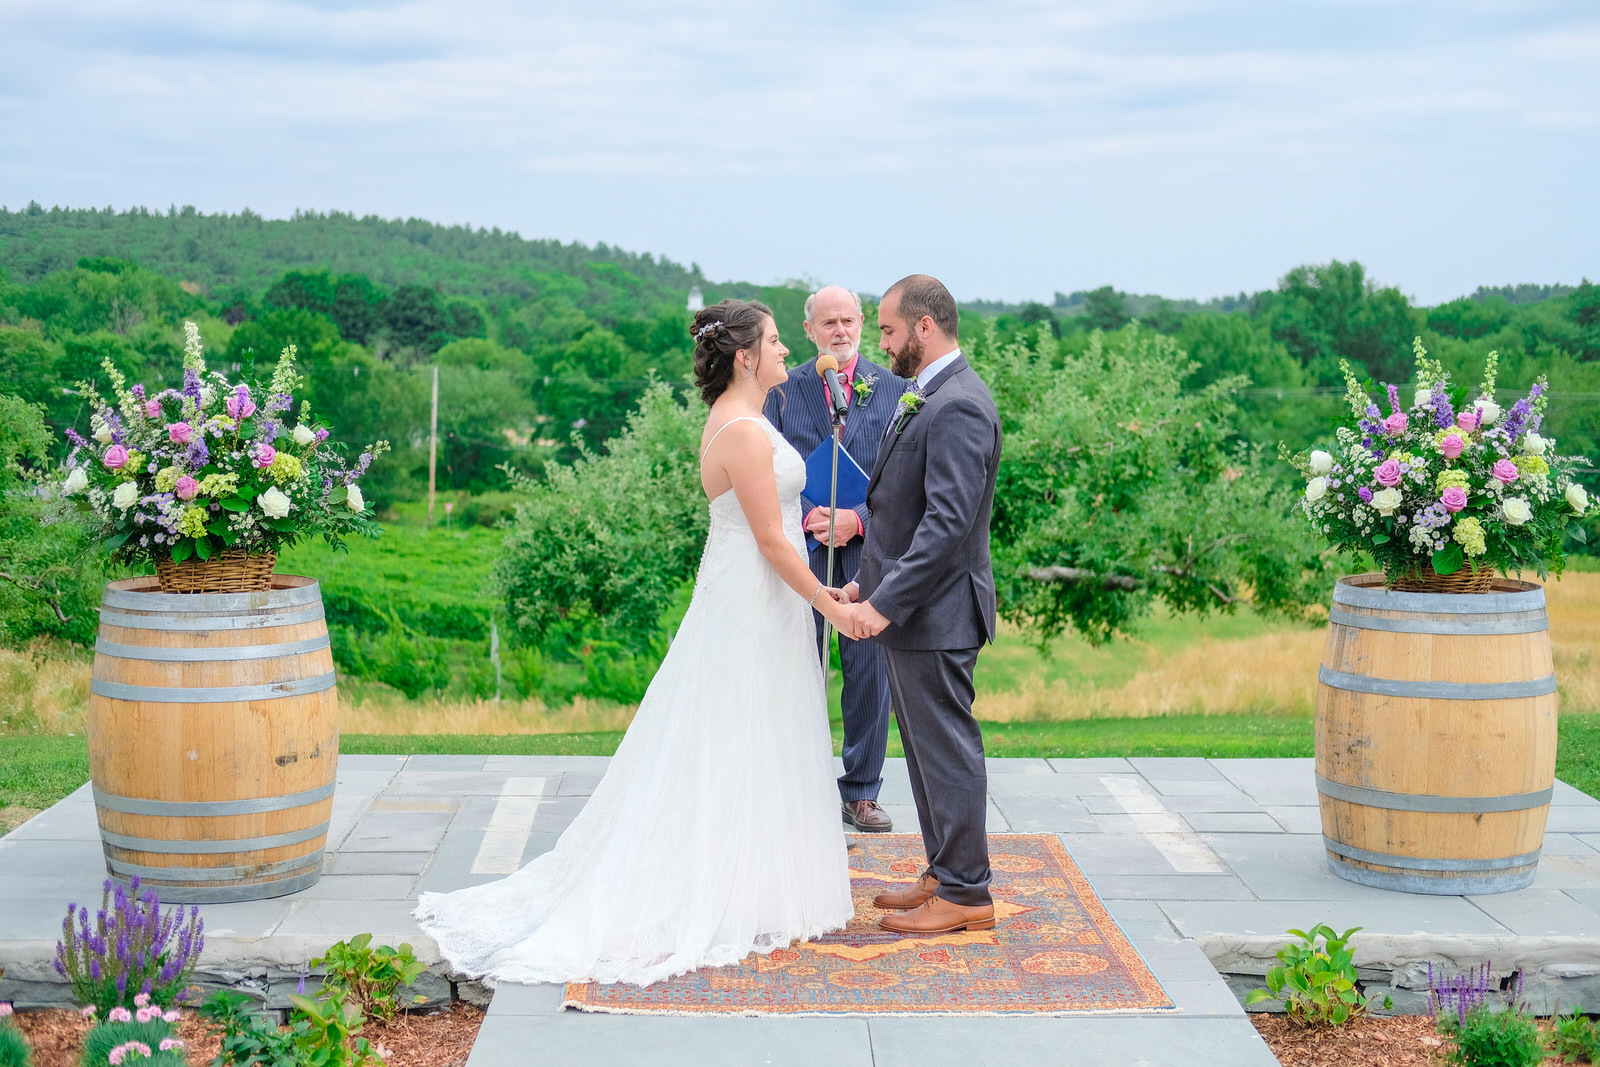 nashoba-valley-winery-wedding-photography-272.jpg